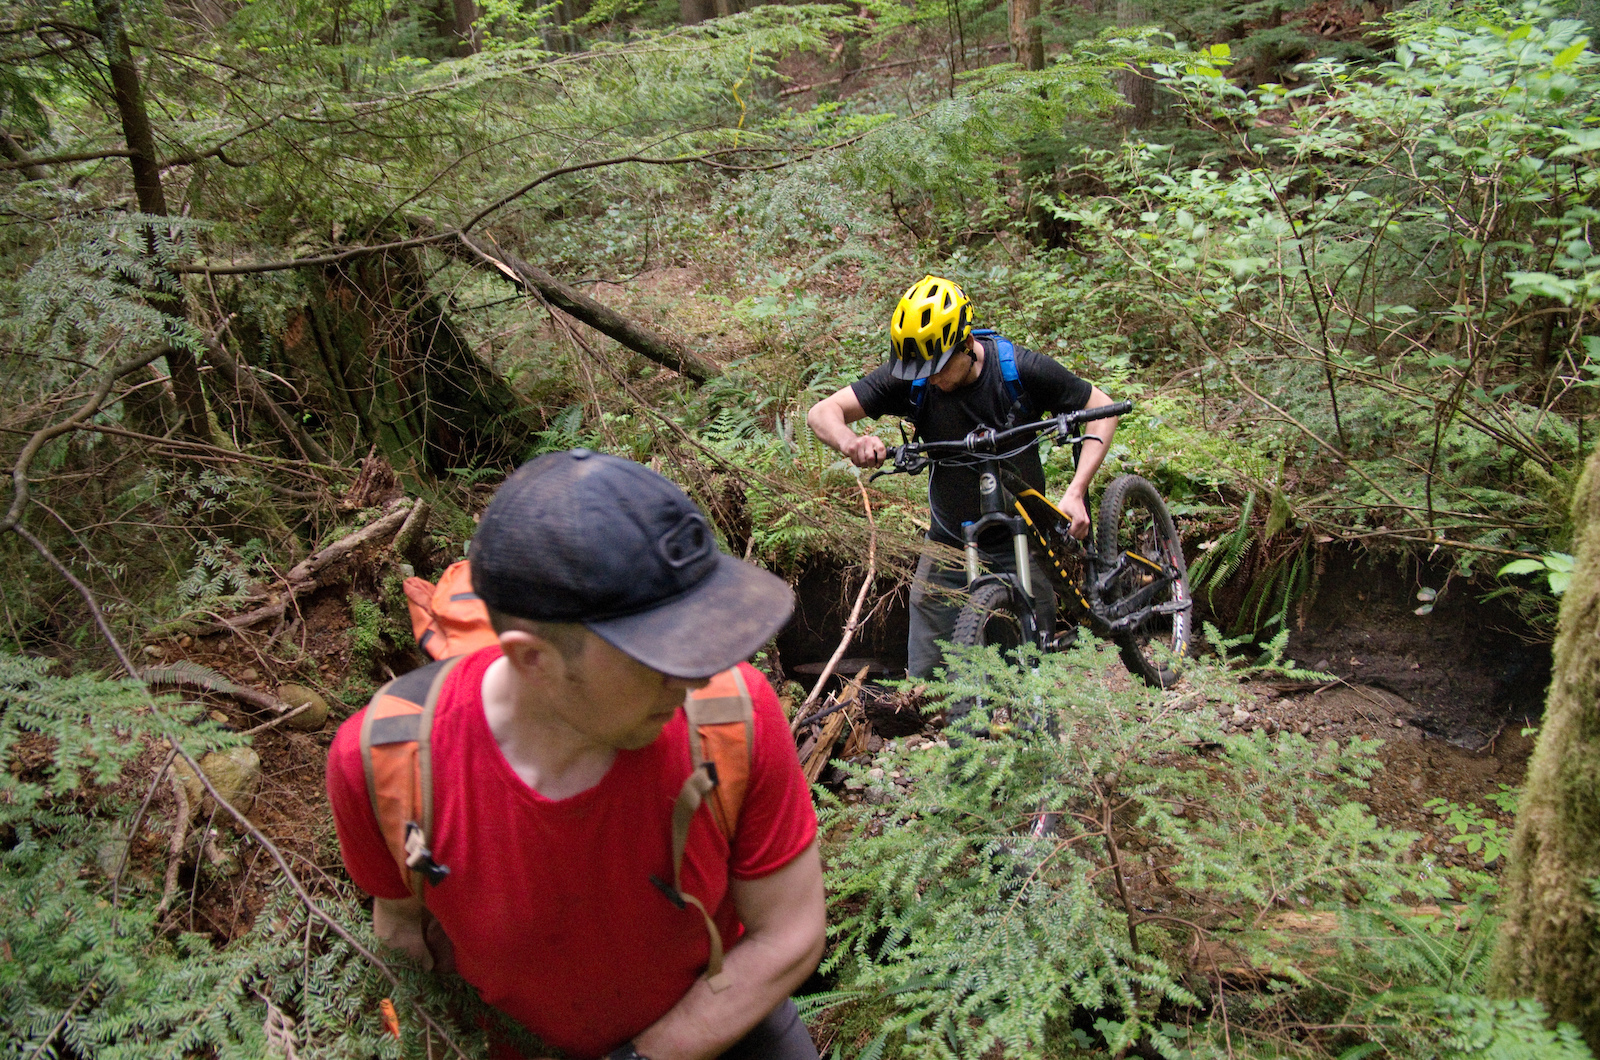 While the exit was in the middle of nowhere and the entrance was hidden to prevent inadvertent damage to the unfinished trail the builders were careful to not be seen. They went in and out when no one was around carried their bikes and took many different routes to minimize damage to the surrounding forest.